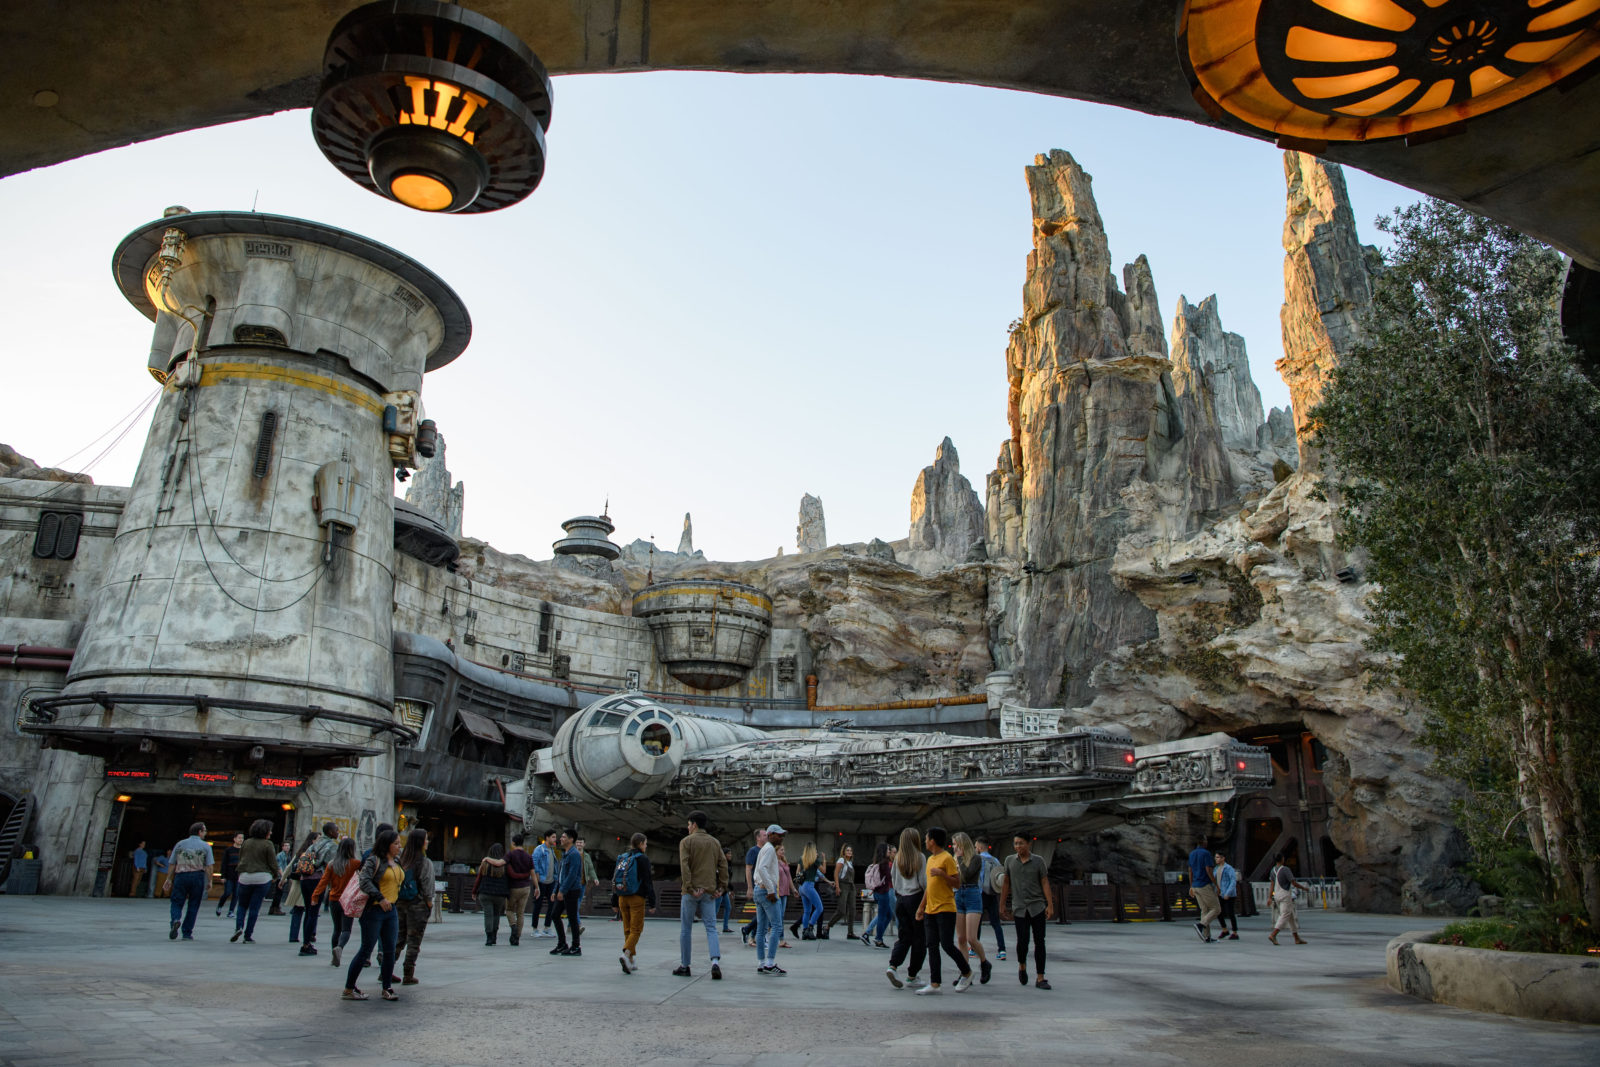 Star Wars: Galaxy's Edge Batuu Disney's Hollywood Studios Millennium Falcon